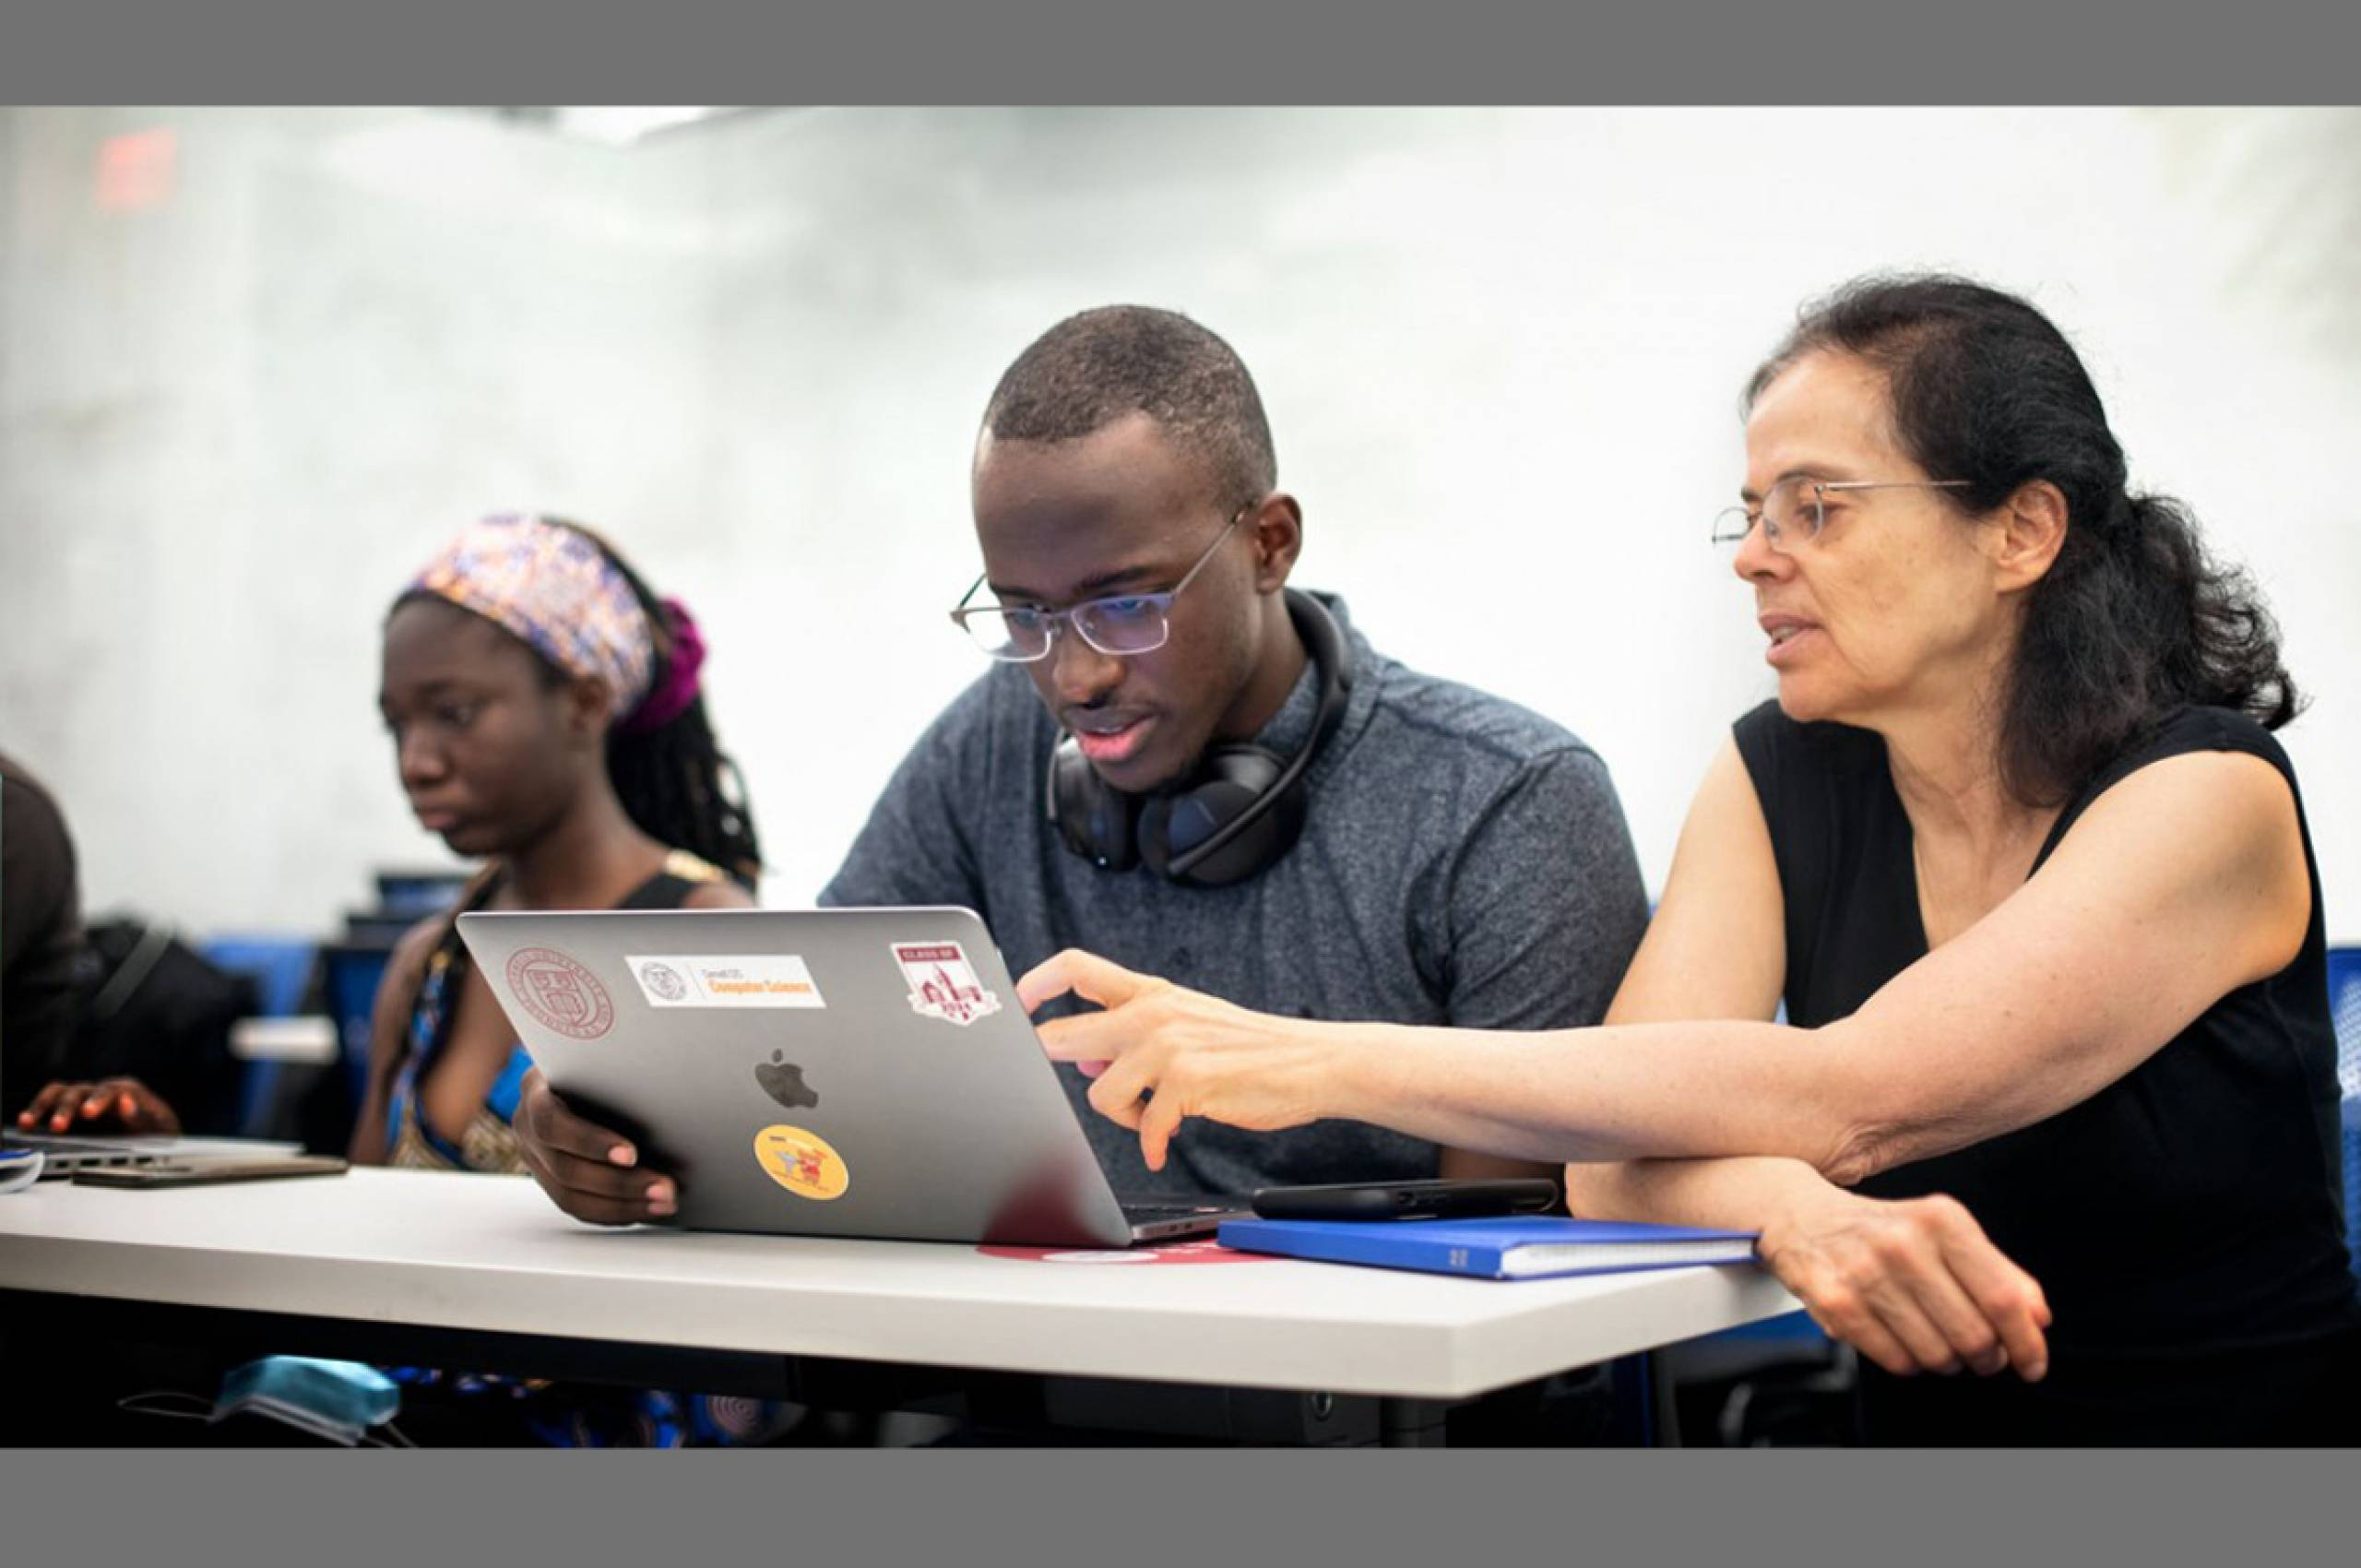 Éva Tardos, the Jacob Gould Schurman Professor of Computer Science, works with students during the 2021 CSMore class in Gates Hall. (photo: Jason Koski)